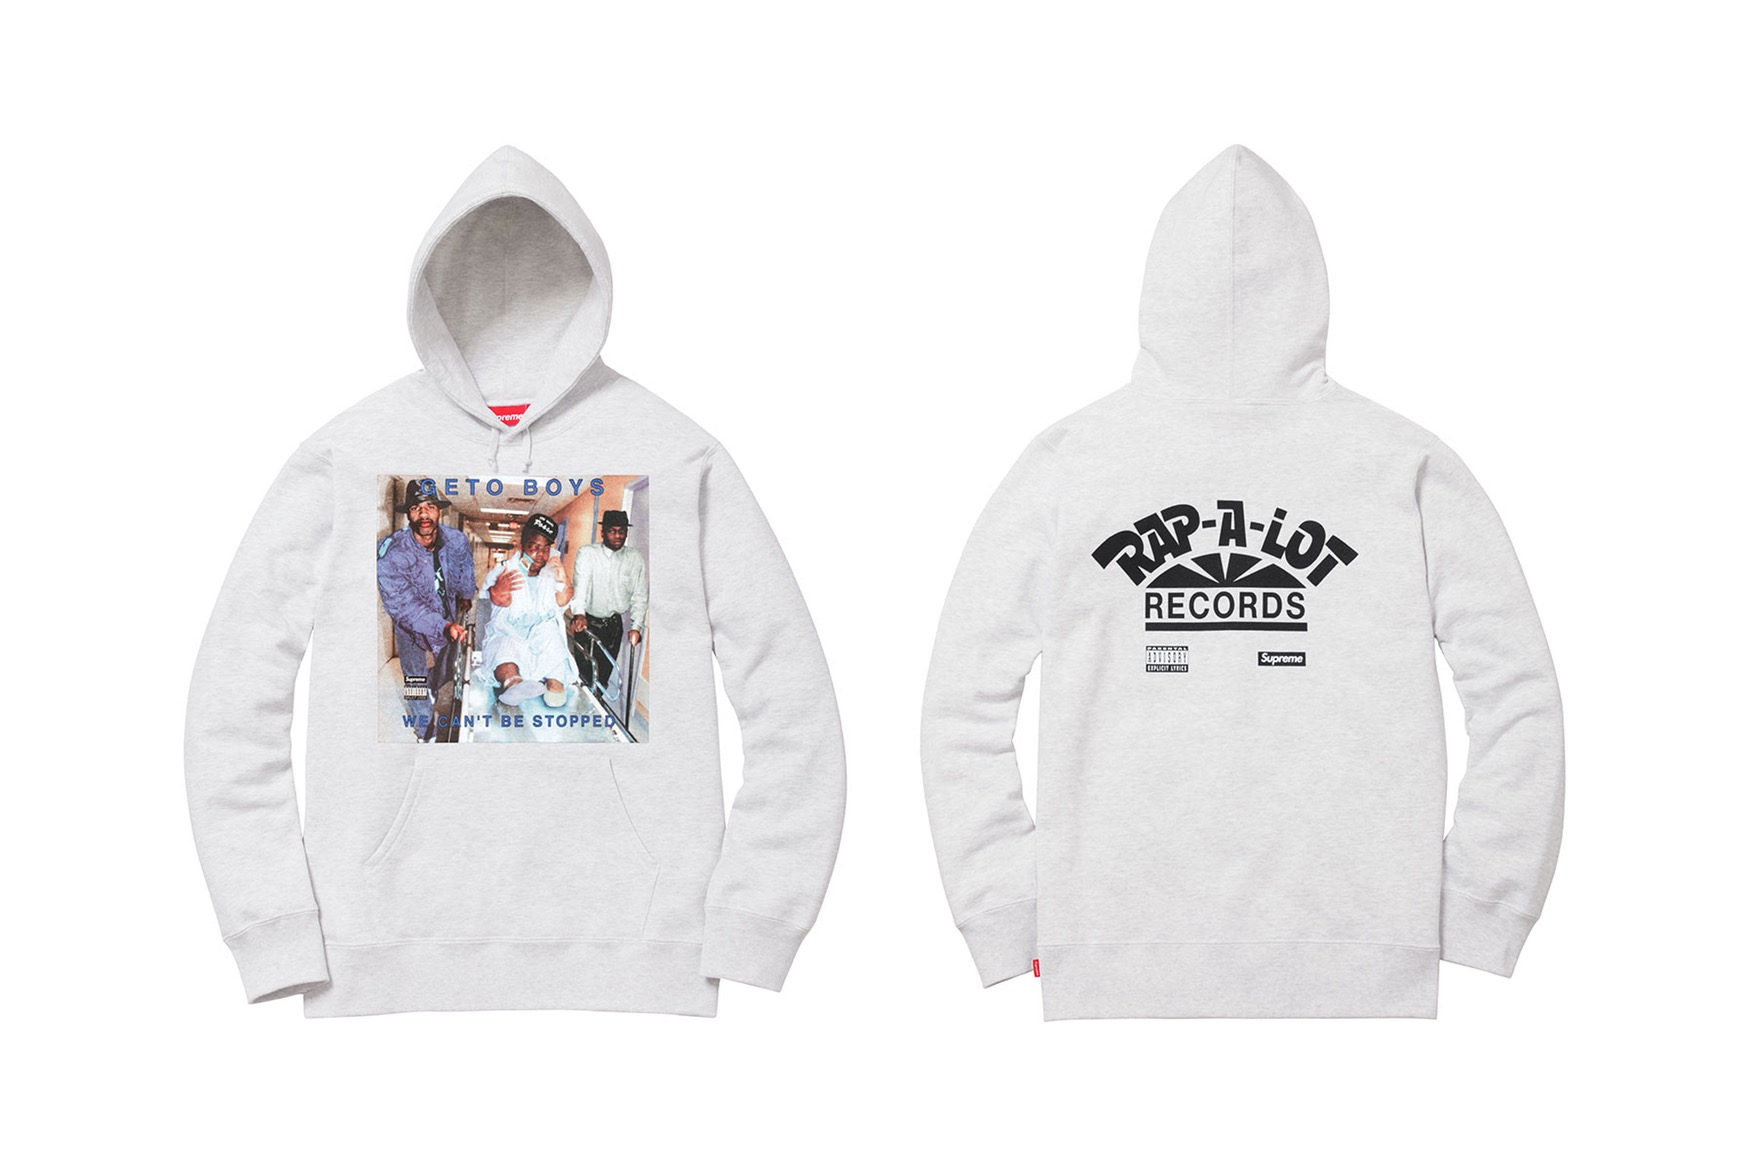 c81501dd1a7 The Supreme x Rap-A-Lot Records collection will be available at Supreme s  New York